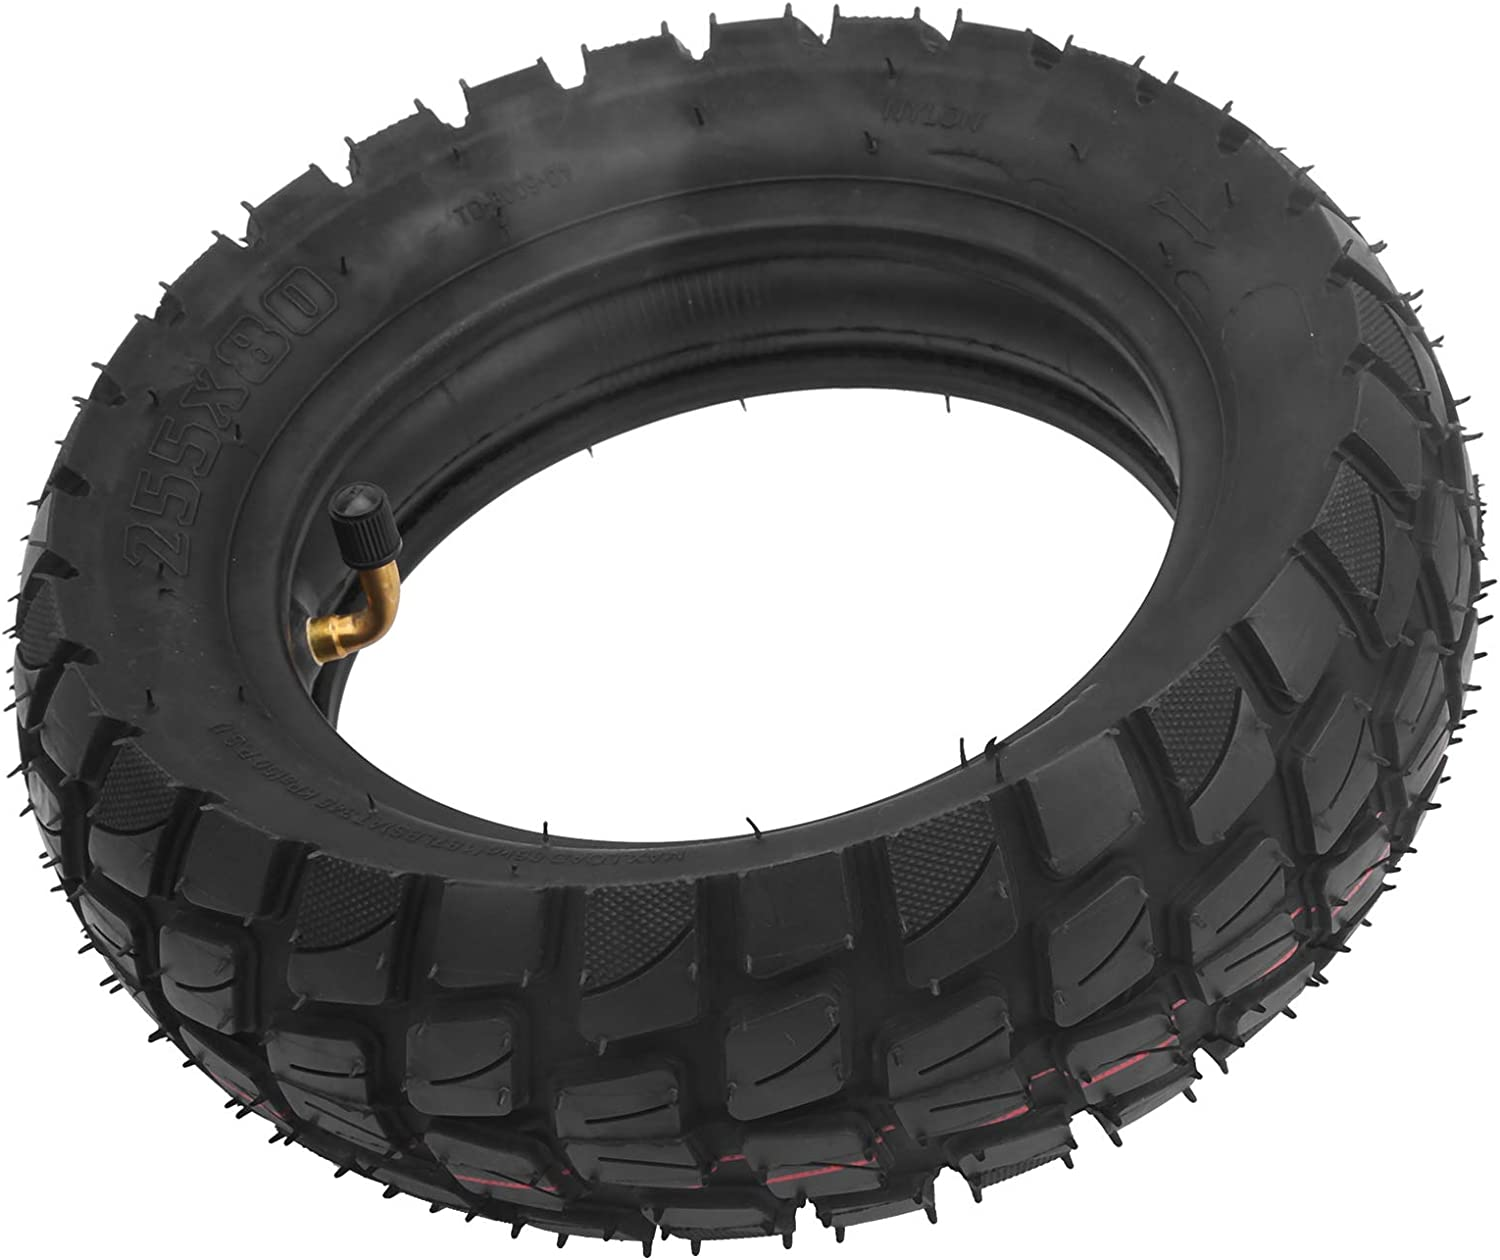 VGEBY Electric Scooter Tire/Wheel, 10in Electric Scooter Tire with Inner Tube Inflatable Rubber Tyre Replacement 255x80